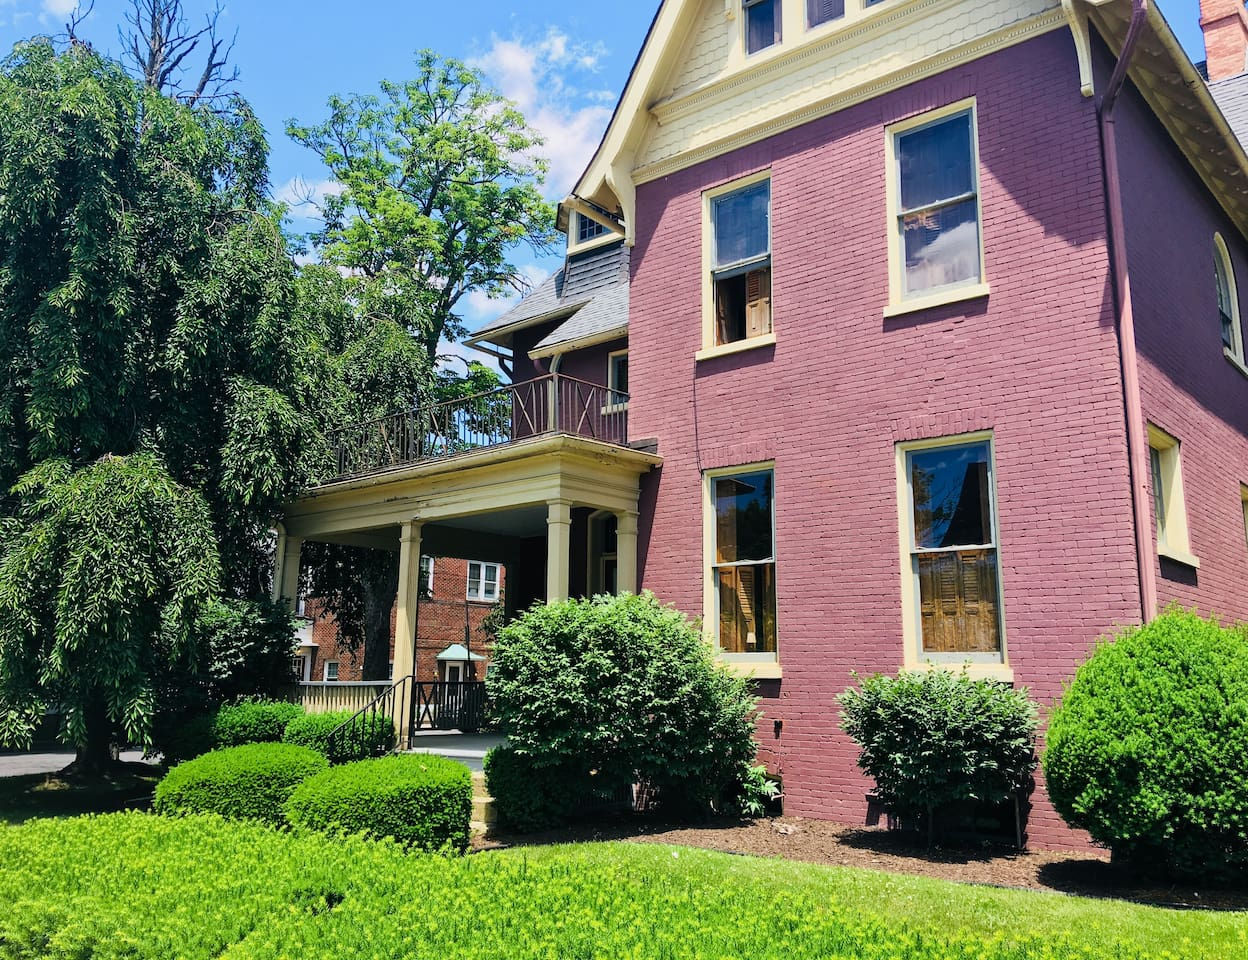 Historic Frederick's House - Downtown Lock Haven! A close walk to just about everything.